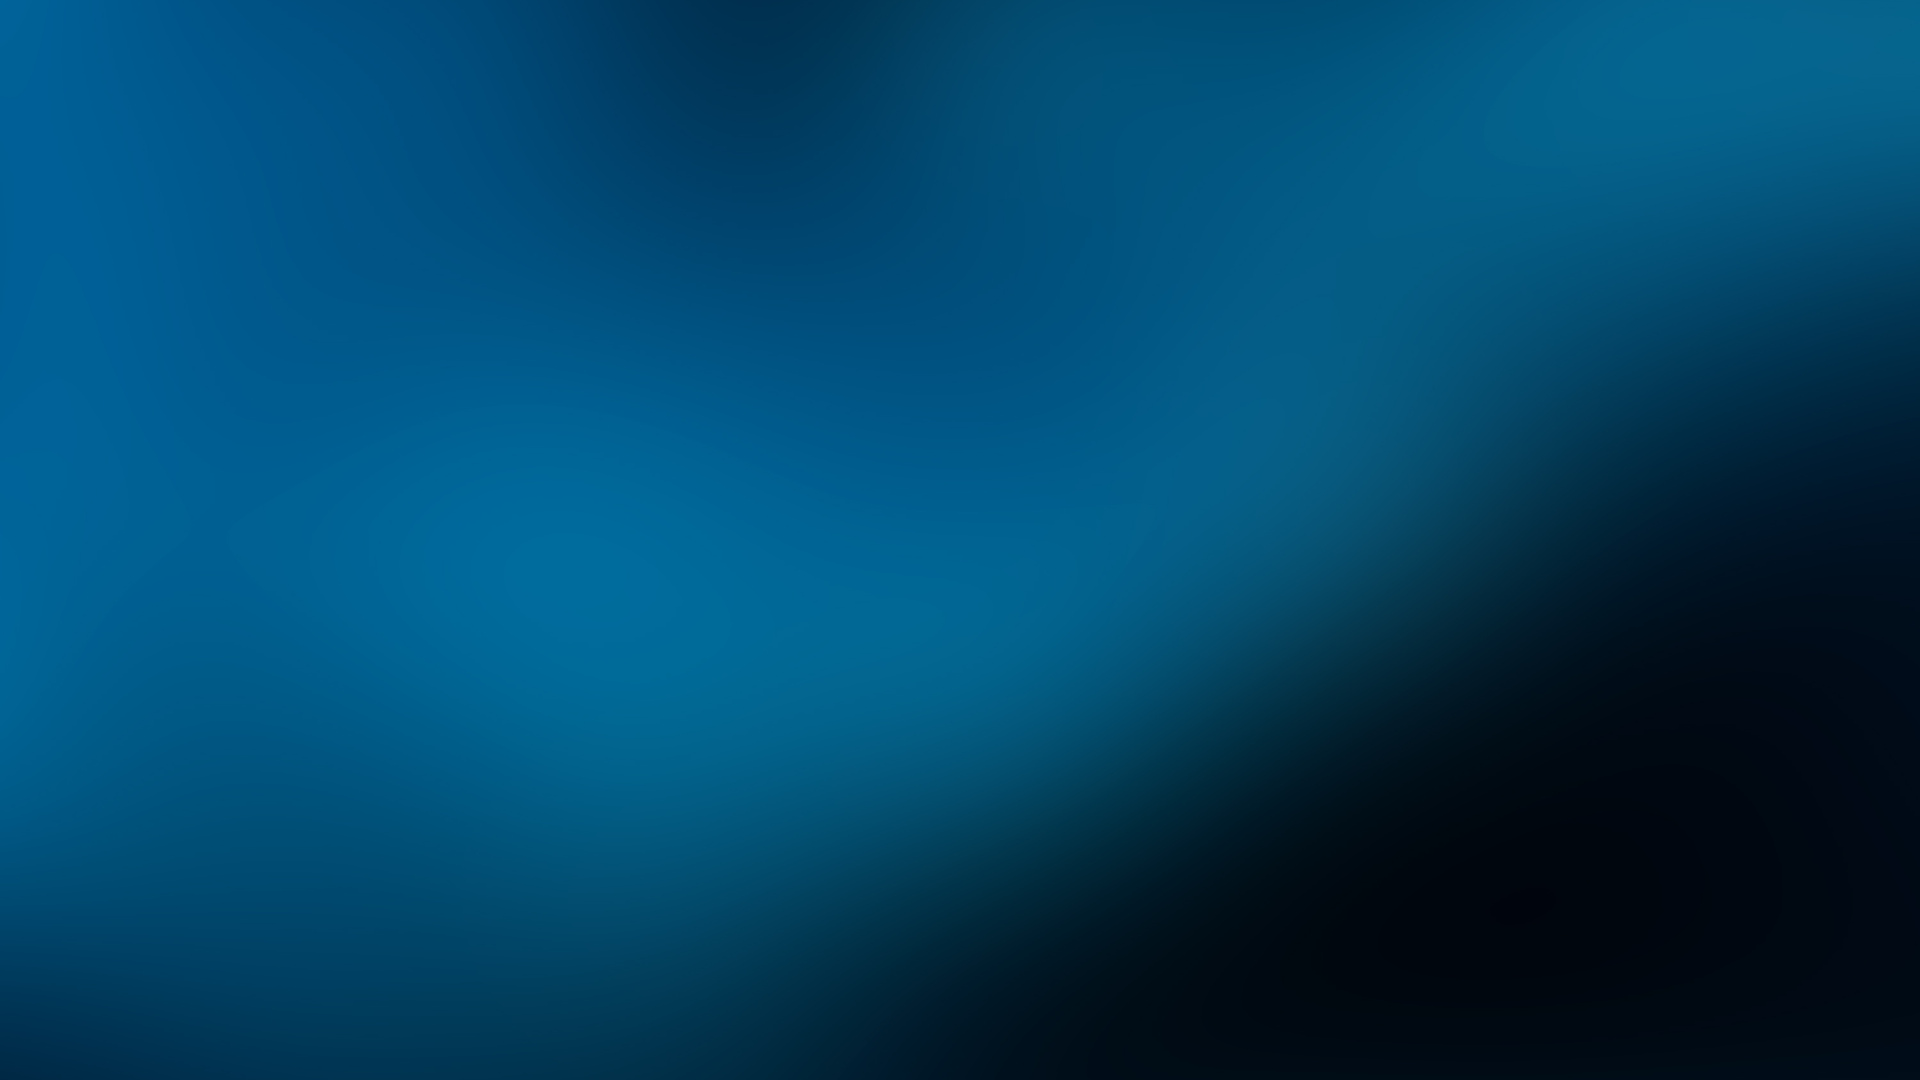 1920x1080 blue abstract simple background laptop full hd